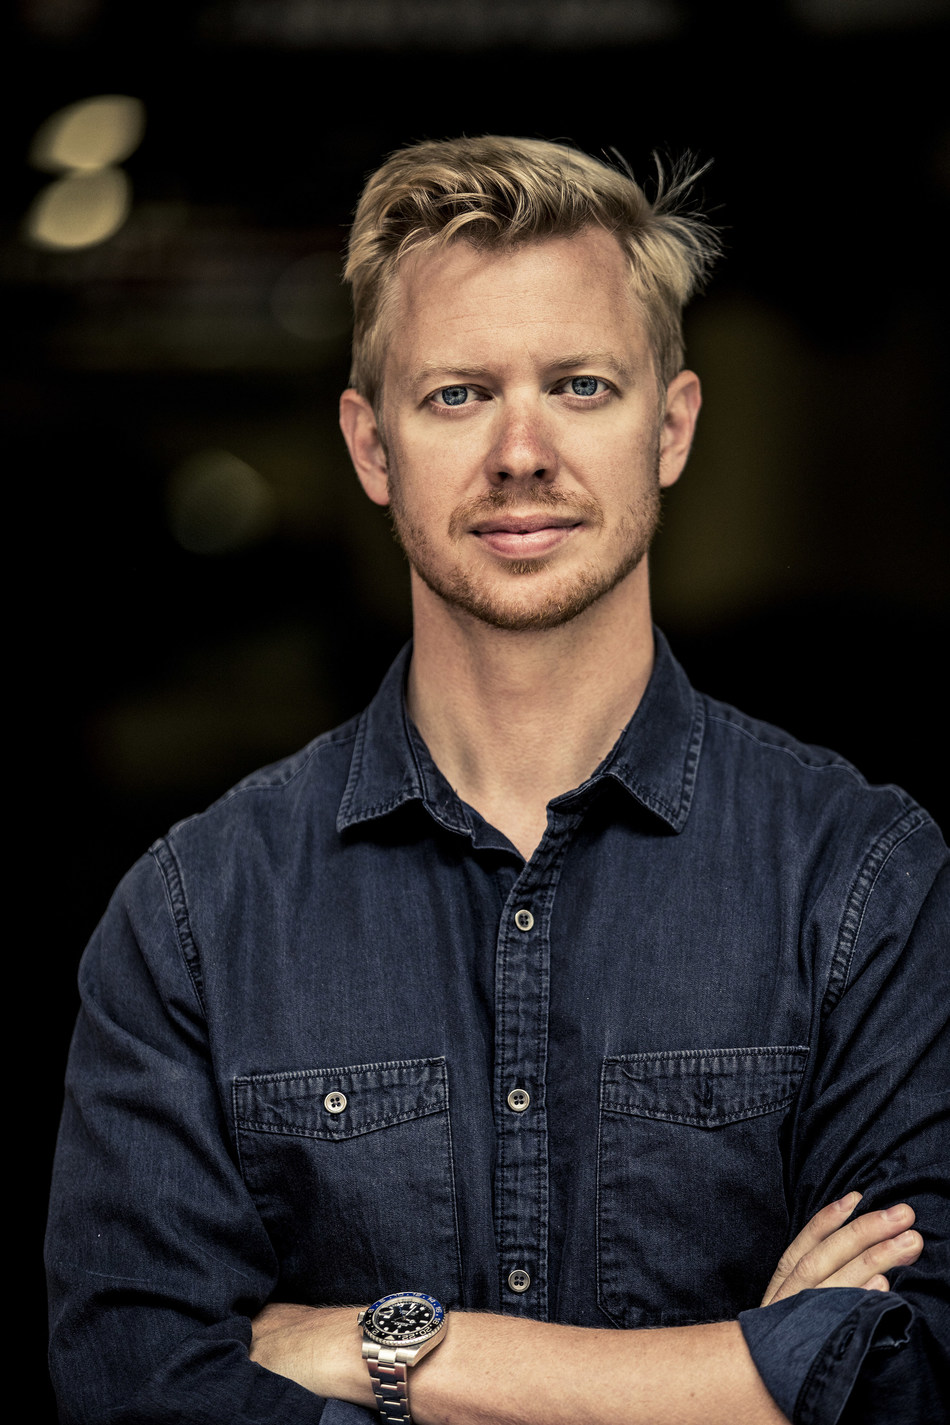 Steve Huffman, co-founder and CEO of Reddit, has joined the Board of Directors at Bishop Fox, the largest private professional services firm focused on offensive security testing.